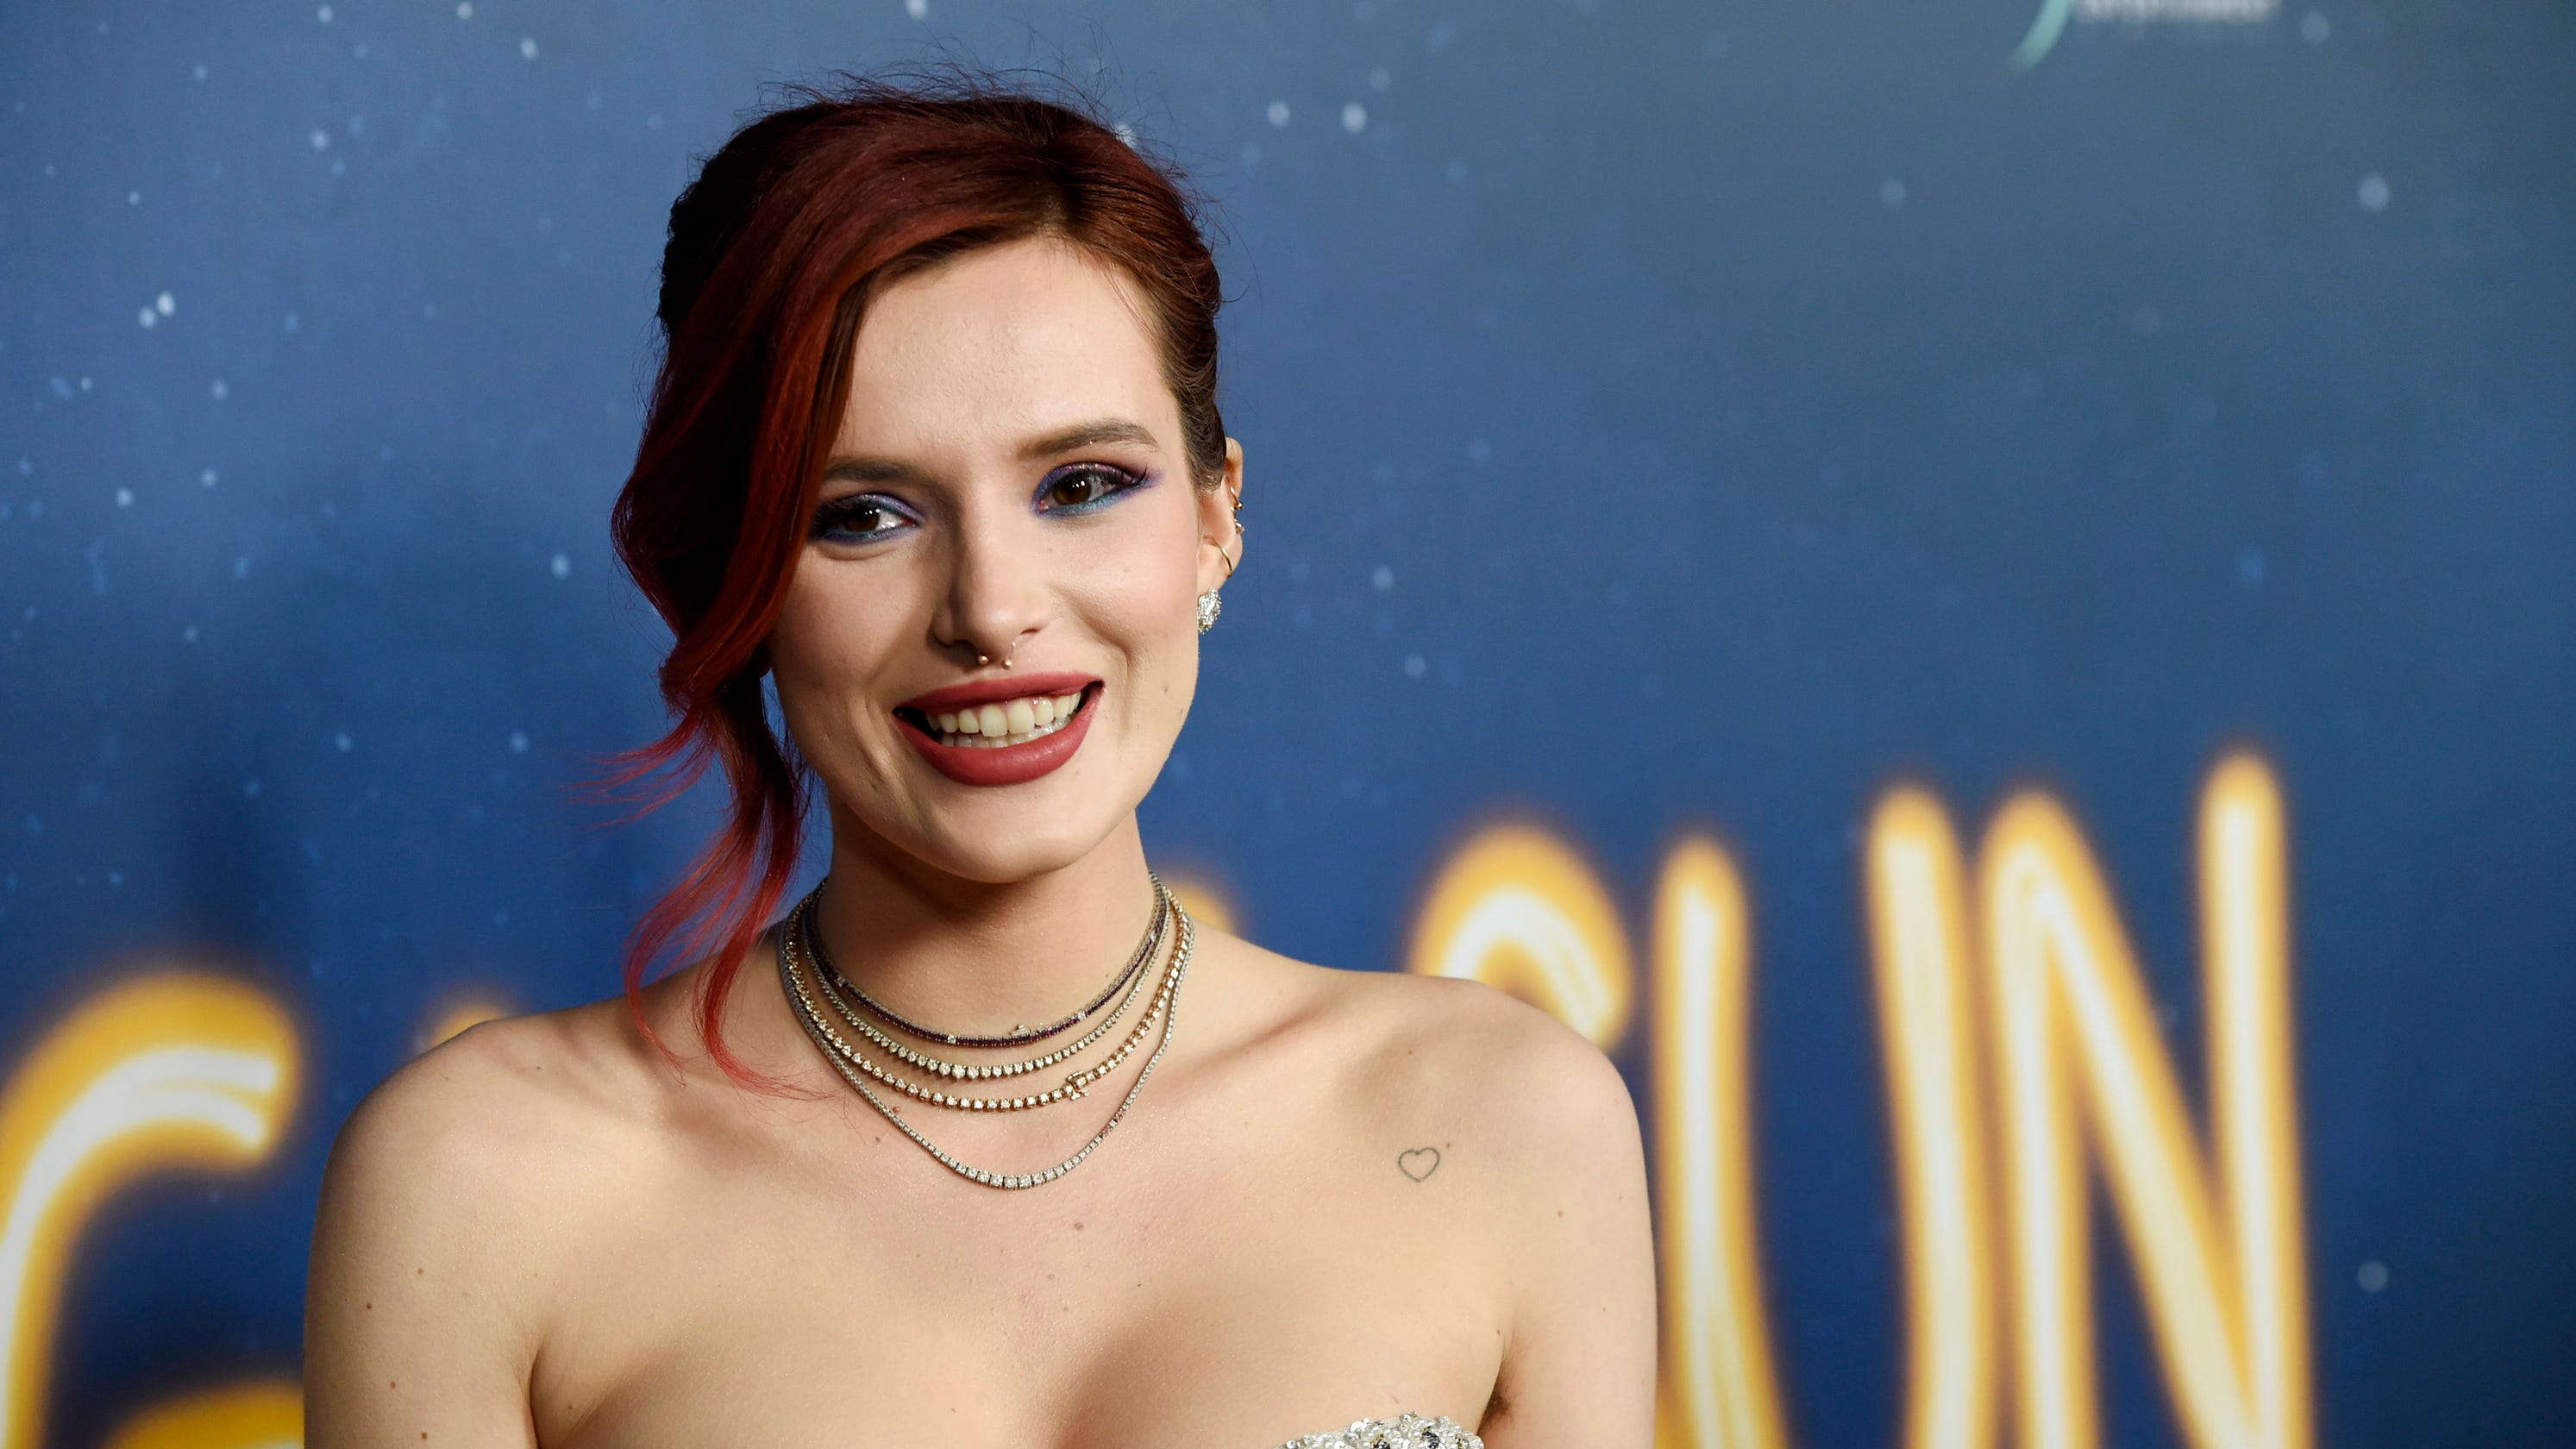 Bella Thorne reveals she's pansexual: What does it mean?